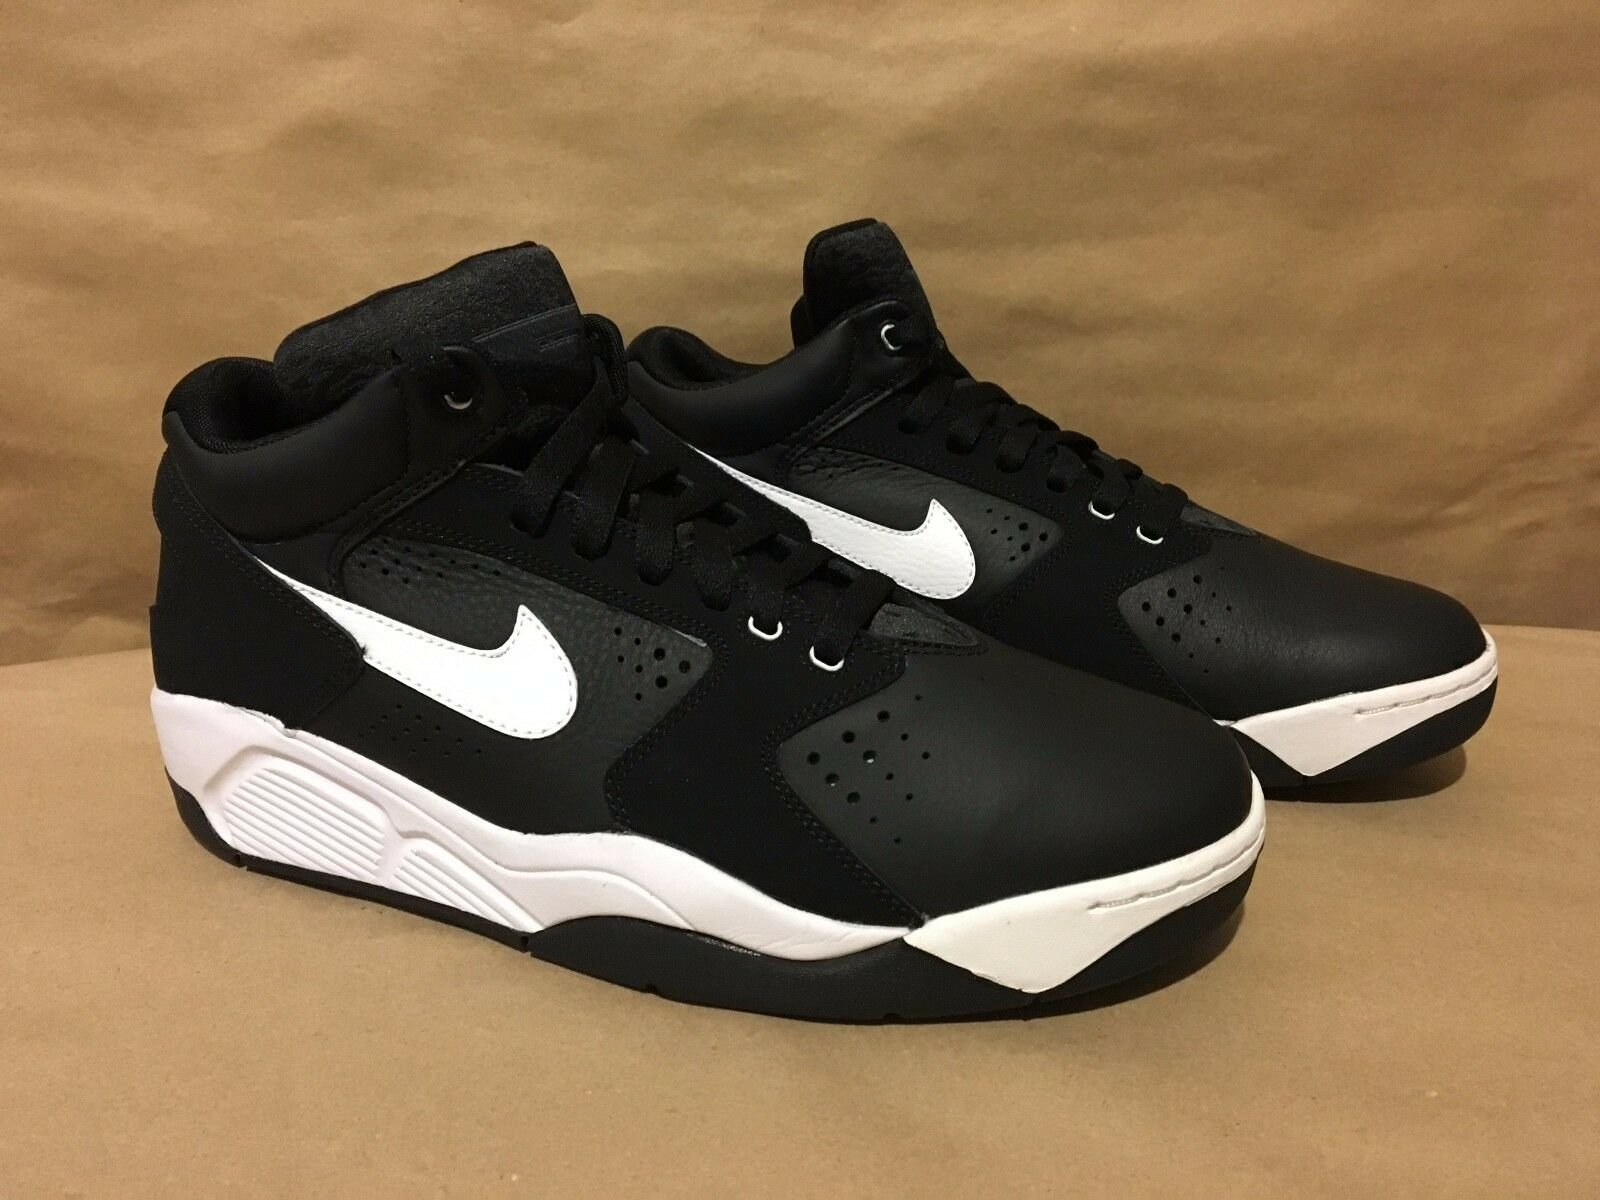 806392-003 nike air flug lite 2015 schwarz / in schwarz -  - n 20 new in / box 7c3d22